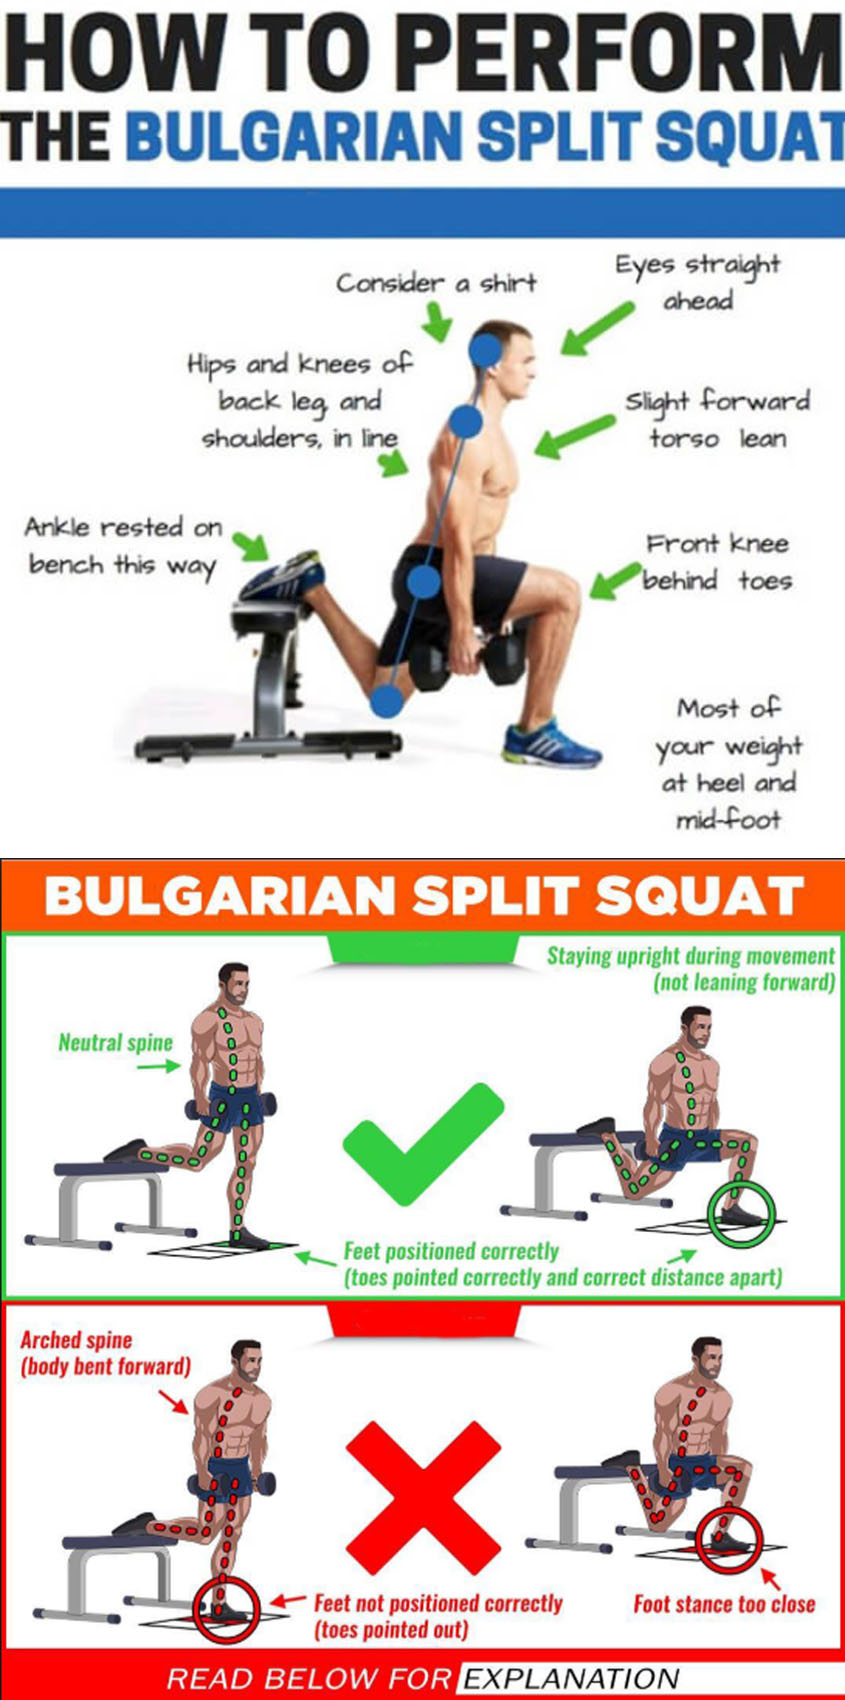 SCIENCE BEHIND SPLIT SQUATS